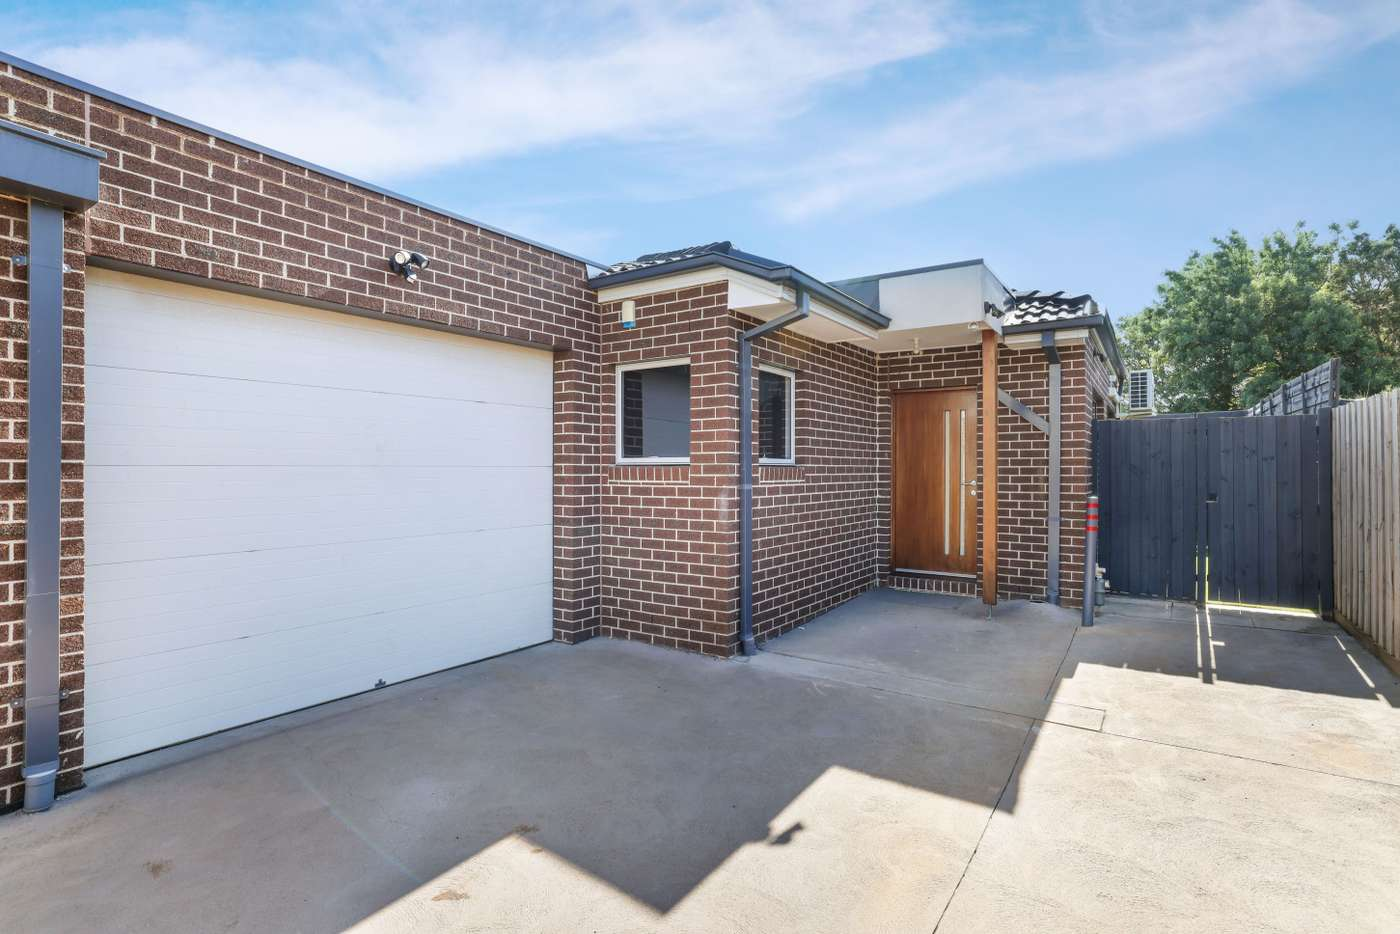 Main view of Homely unit listing, 3/85 Hubert Avenue, Glenroy VIC 3046